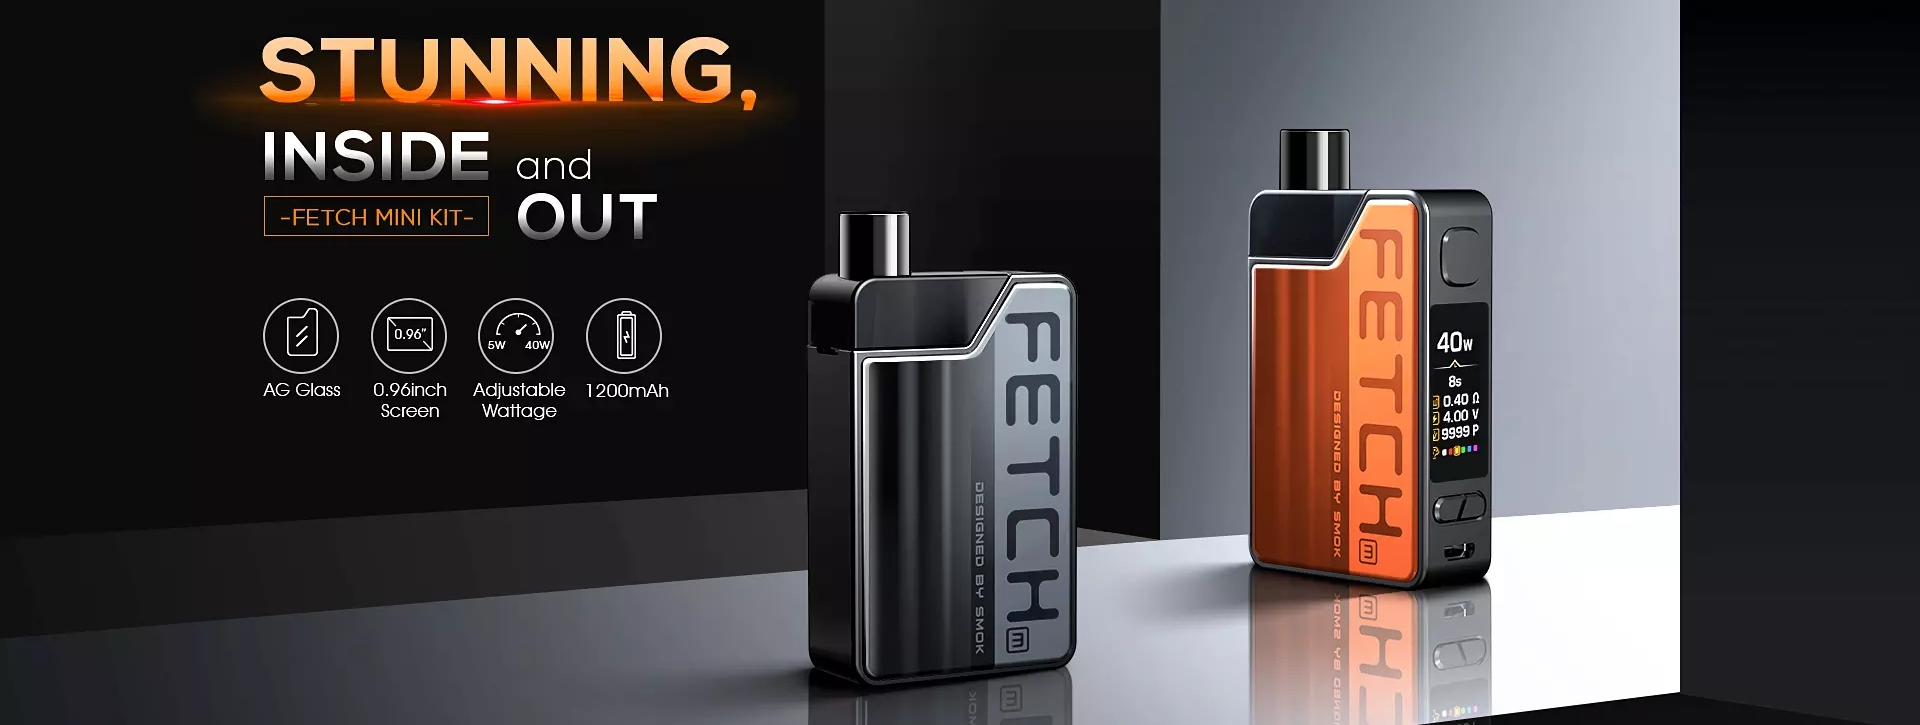 20 Smok Fetch Mini